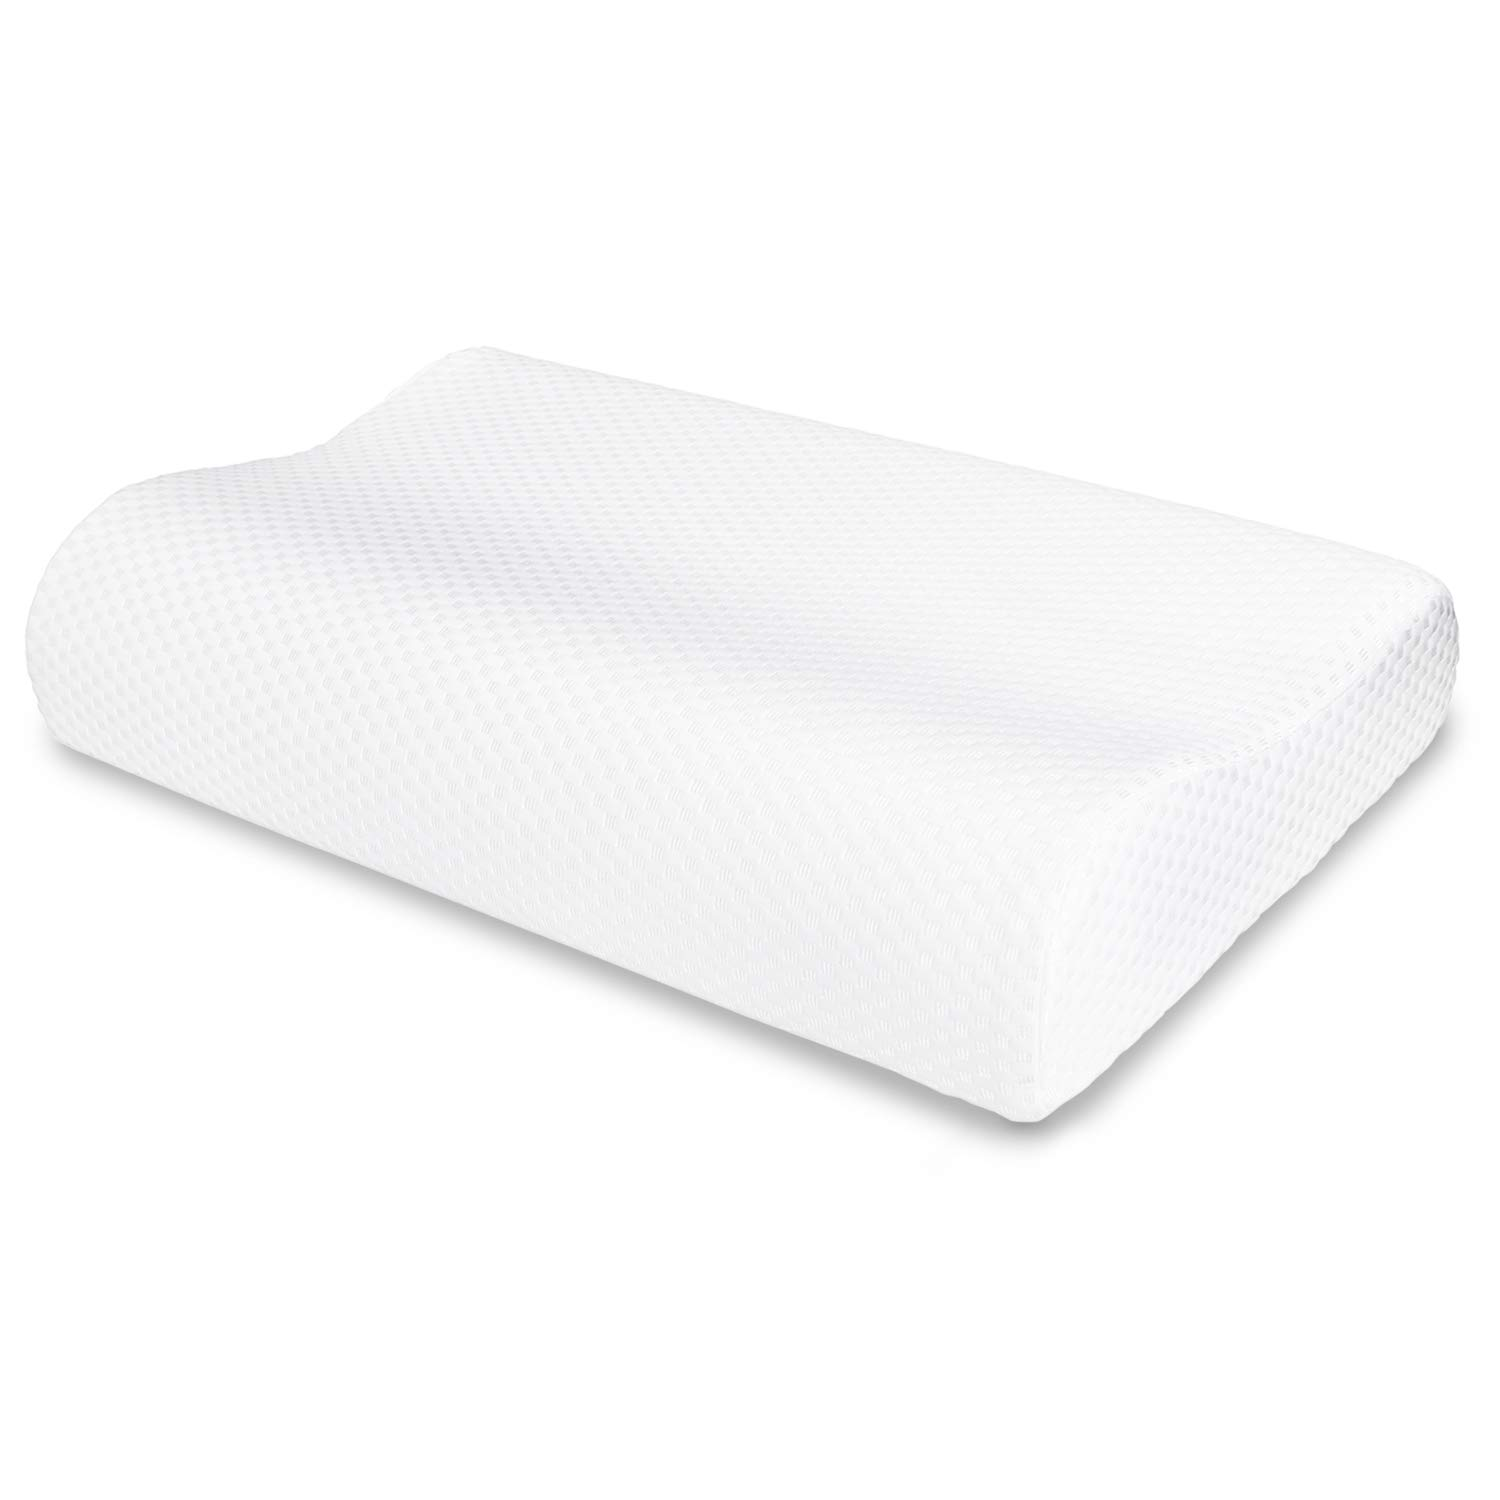 VECELO Memory Foam Contour Pillow, for Side Sleeper-Relieve Neck Pain with Washable Zippered Soft Cover-Standard Size for Adult & Children